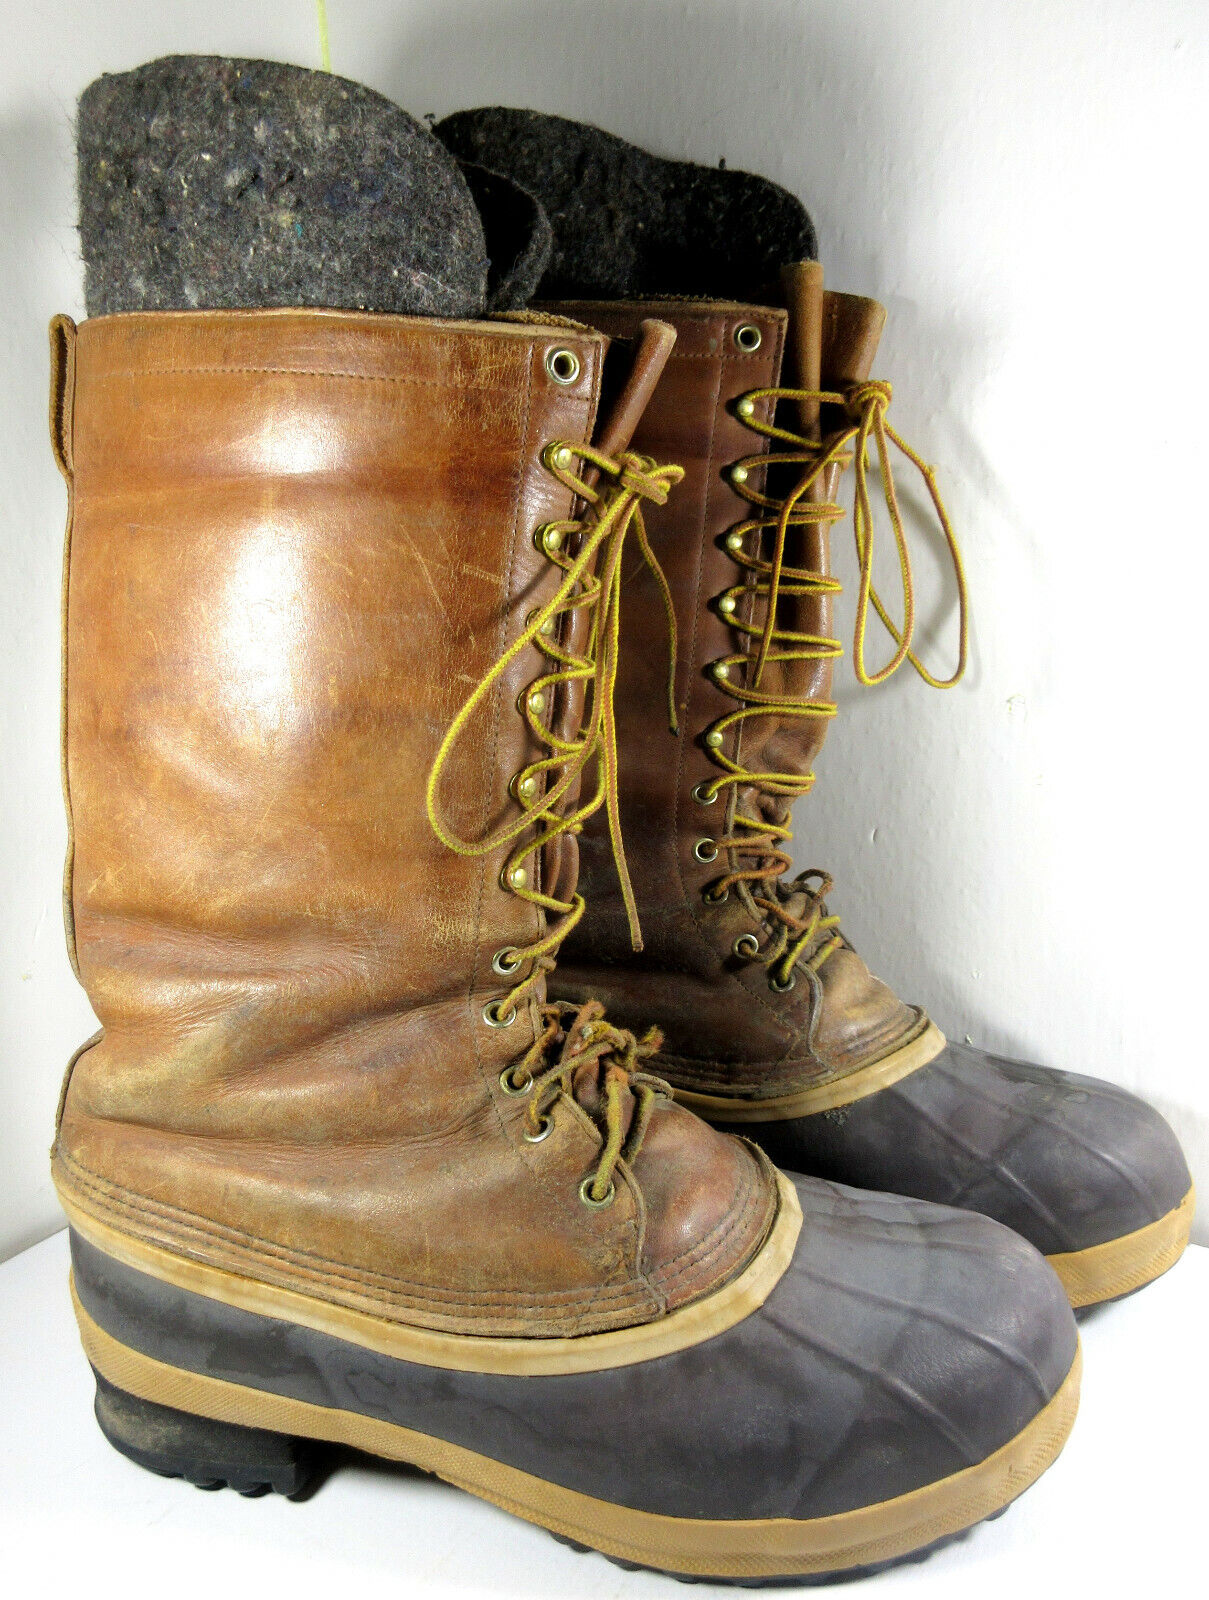 White's Boots  Leather Rubber Insulated Tall Elk Deer Winter Hunting Size 13 Mens  save 60% discount